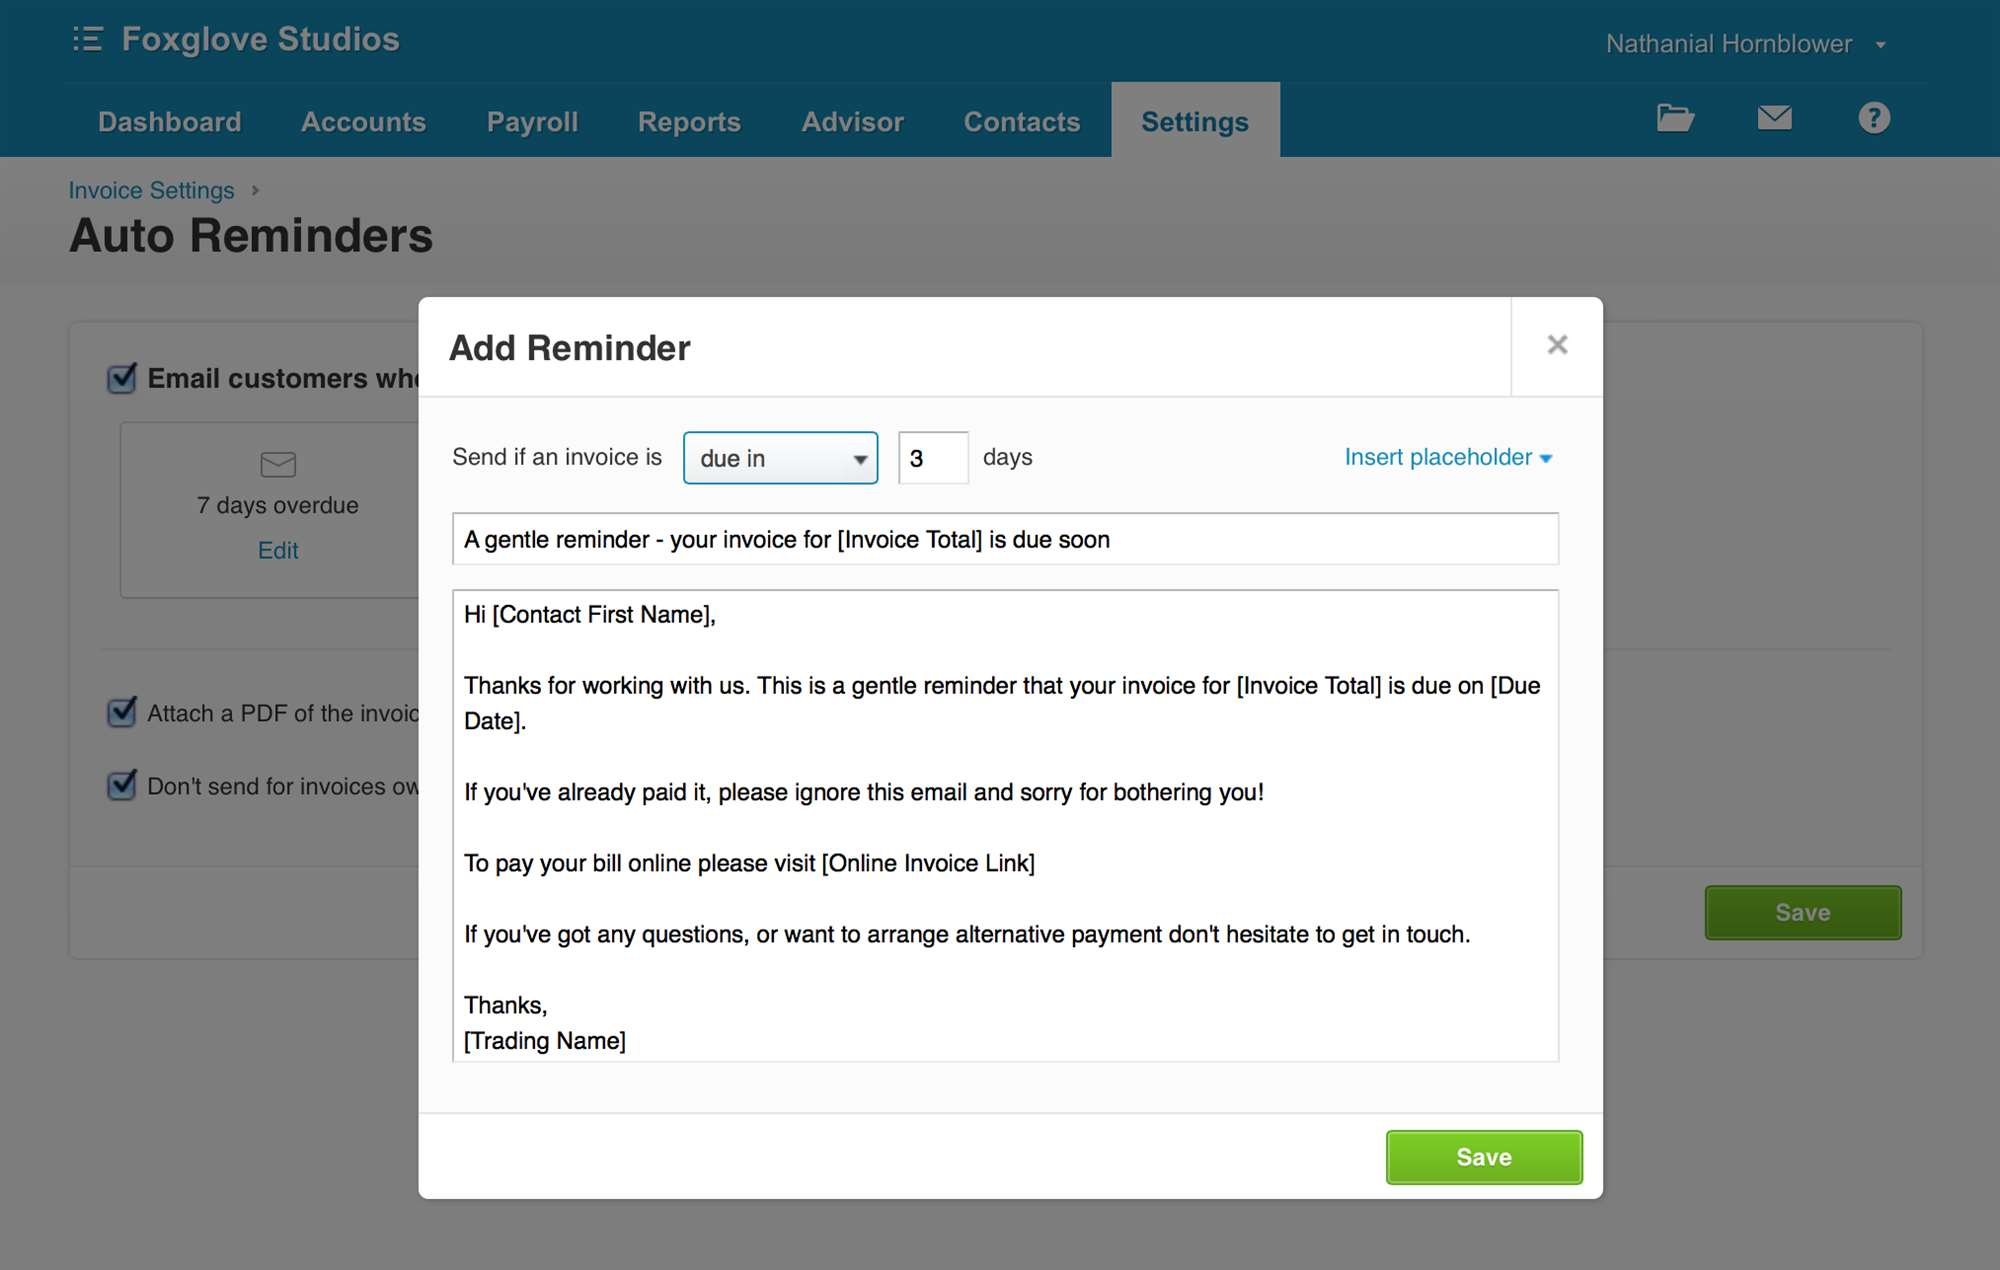 Xero Reminders Arrive On Schedule Services Business IT - Invoice reminder email